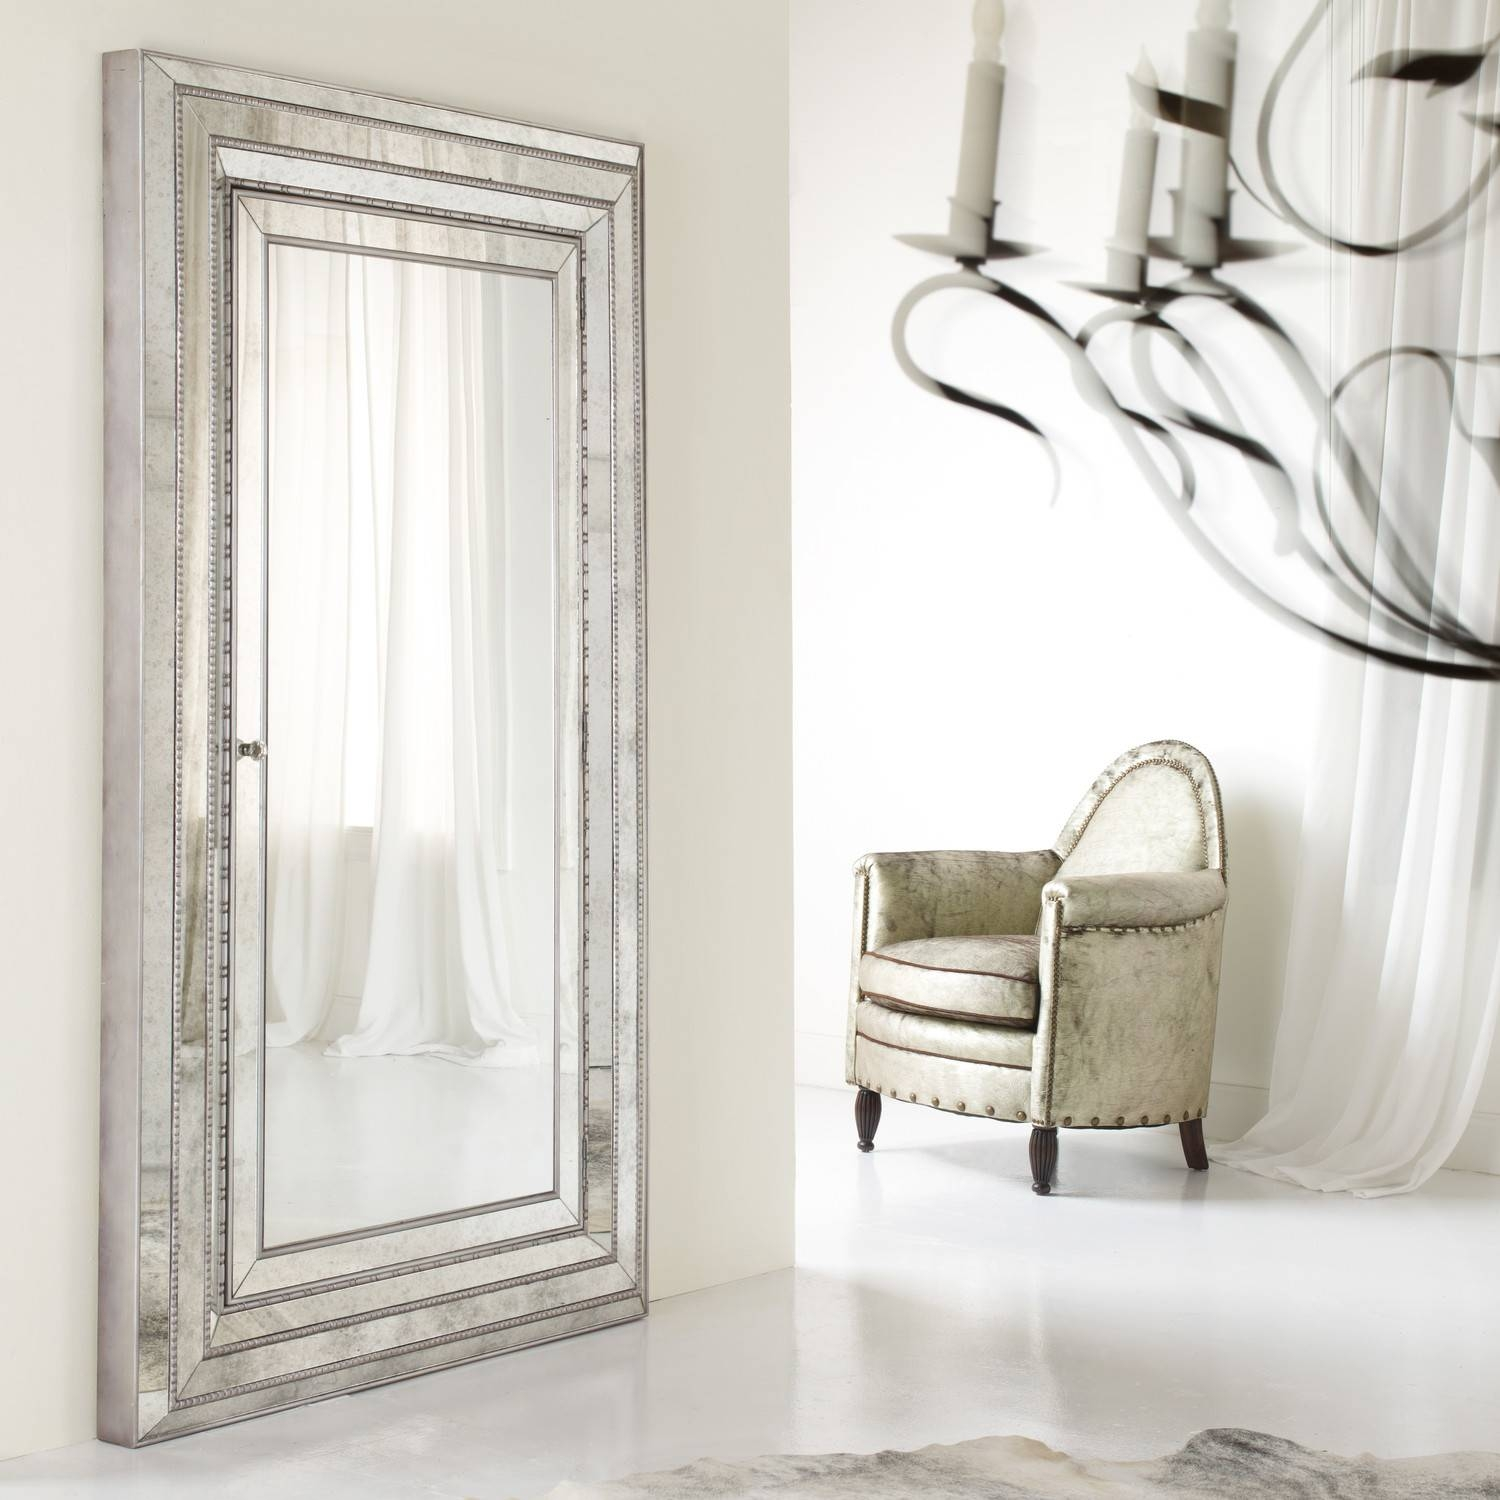 Furniture: Mesmerizing Oversized Floor Mirror For Home Furniture throughout Full Length Decorative Mirrors (Image 18 of 25)